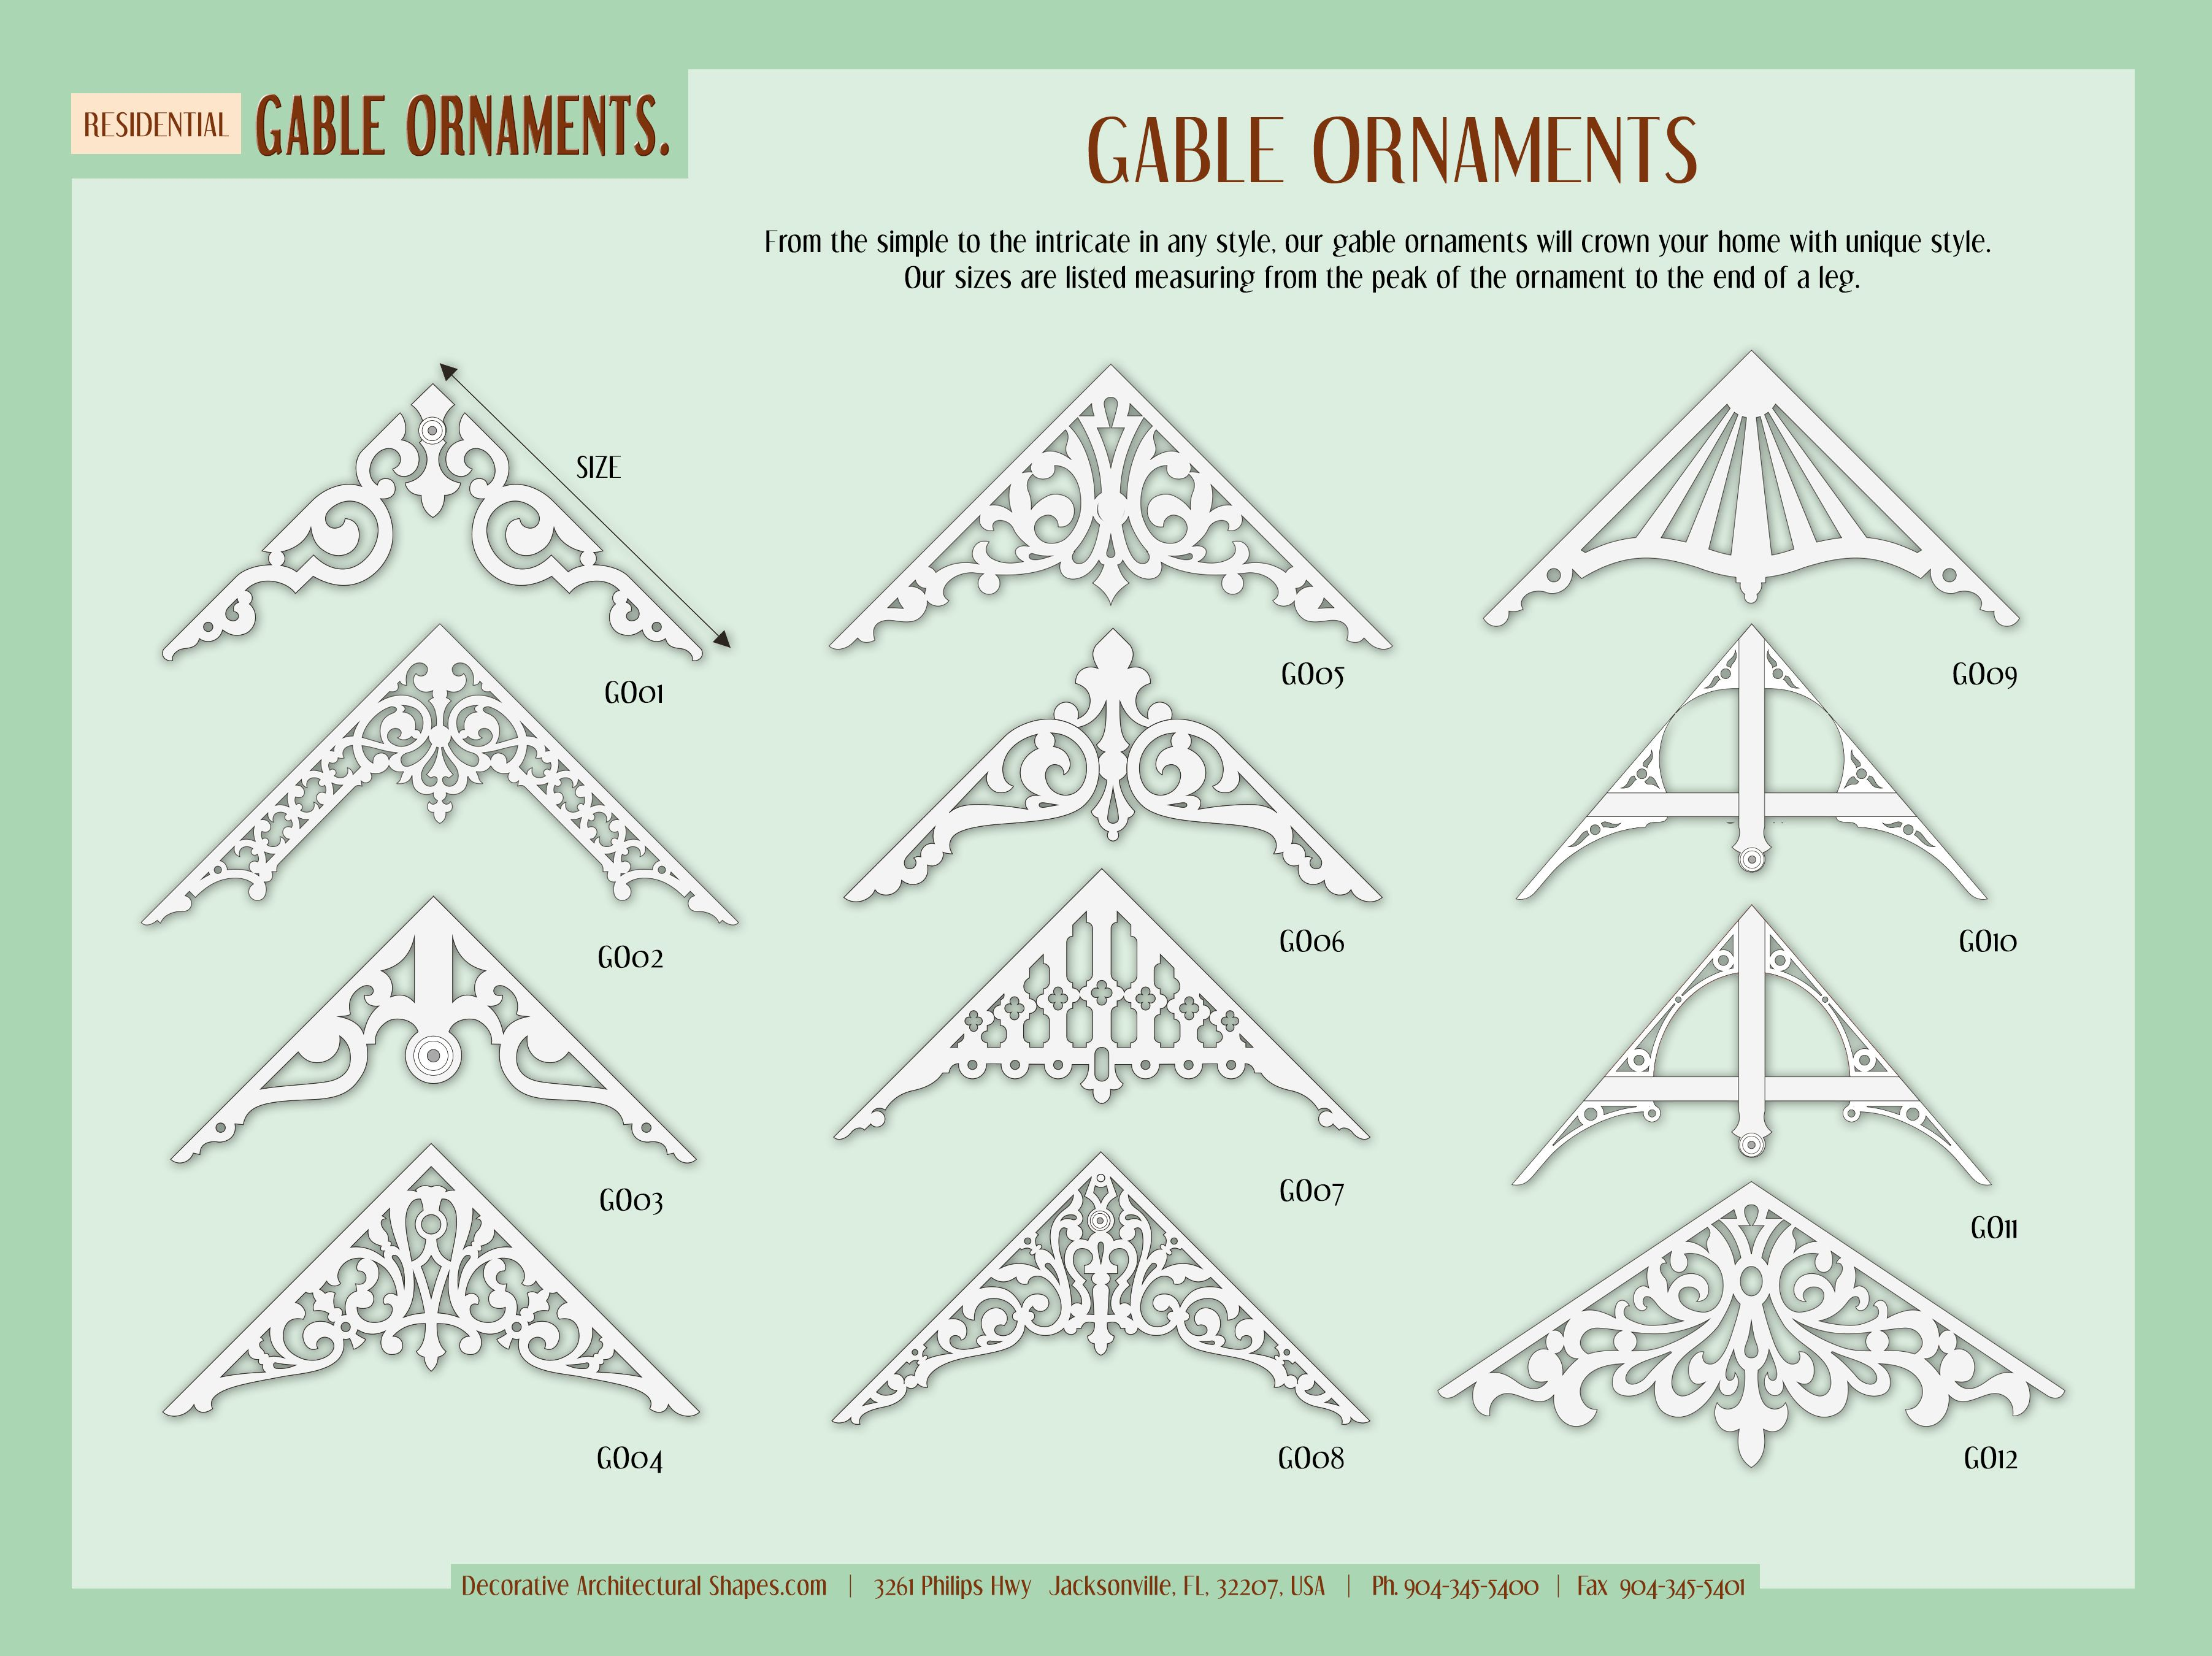 Pin By Decorative Architectural Shape On Decorative Architectural Shapes Catalog Gable Roof Design Outdoor Remodel Roof Design